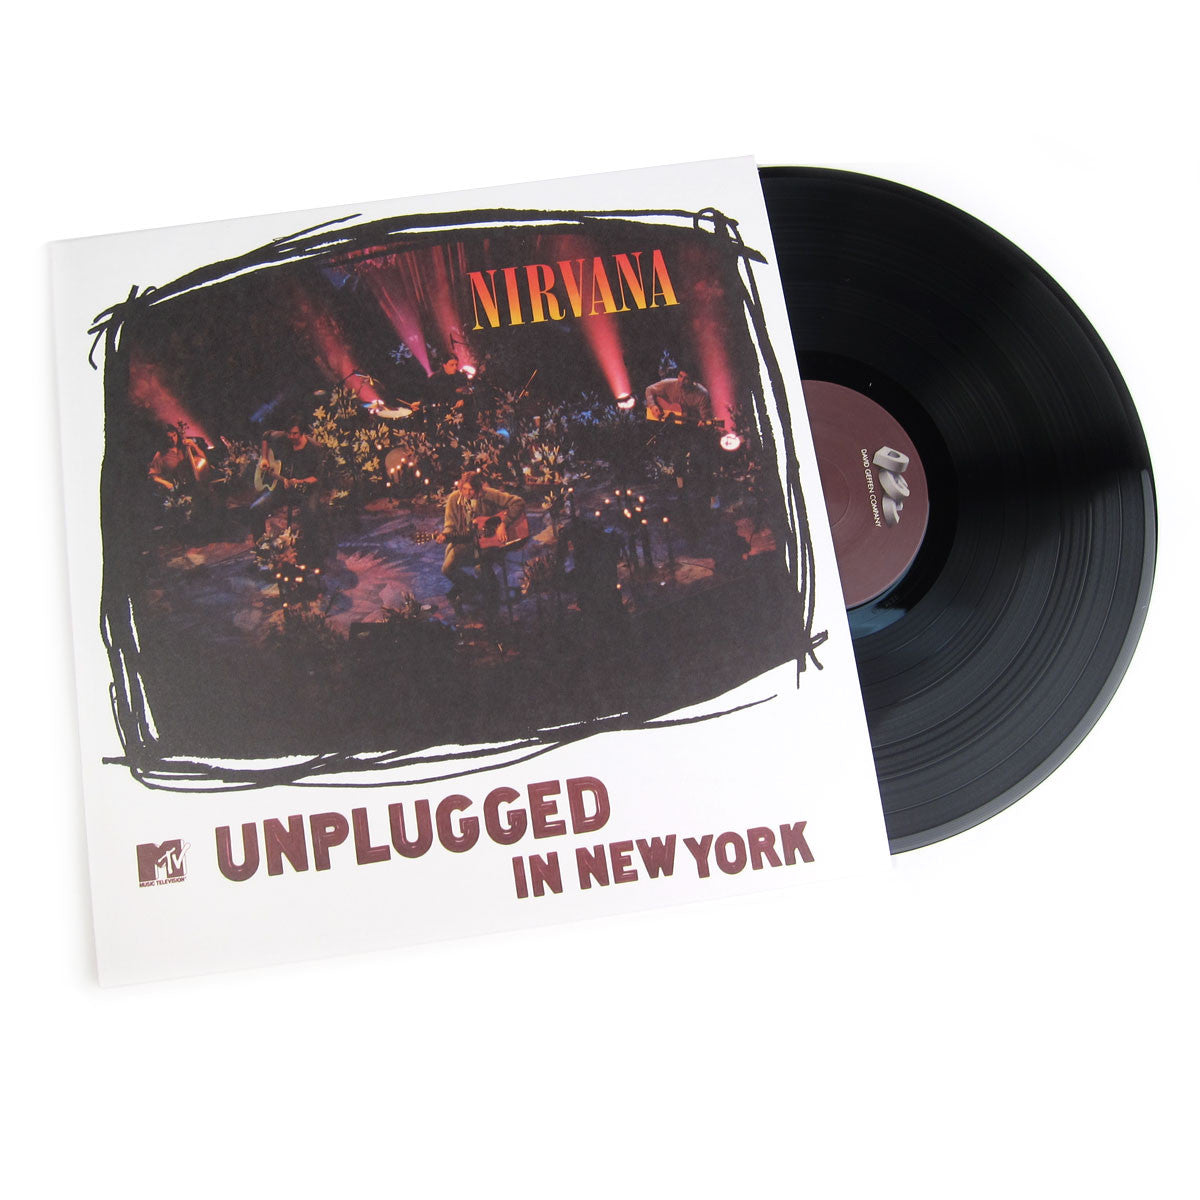 Nirvana: MTV Unplugged in New York (180g) Vinyl LP